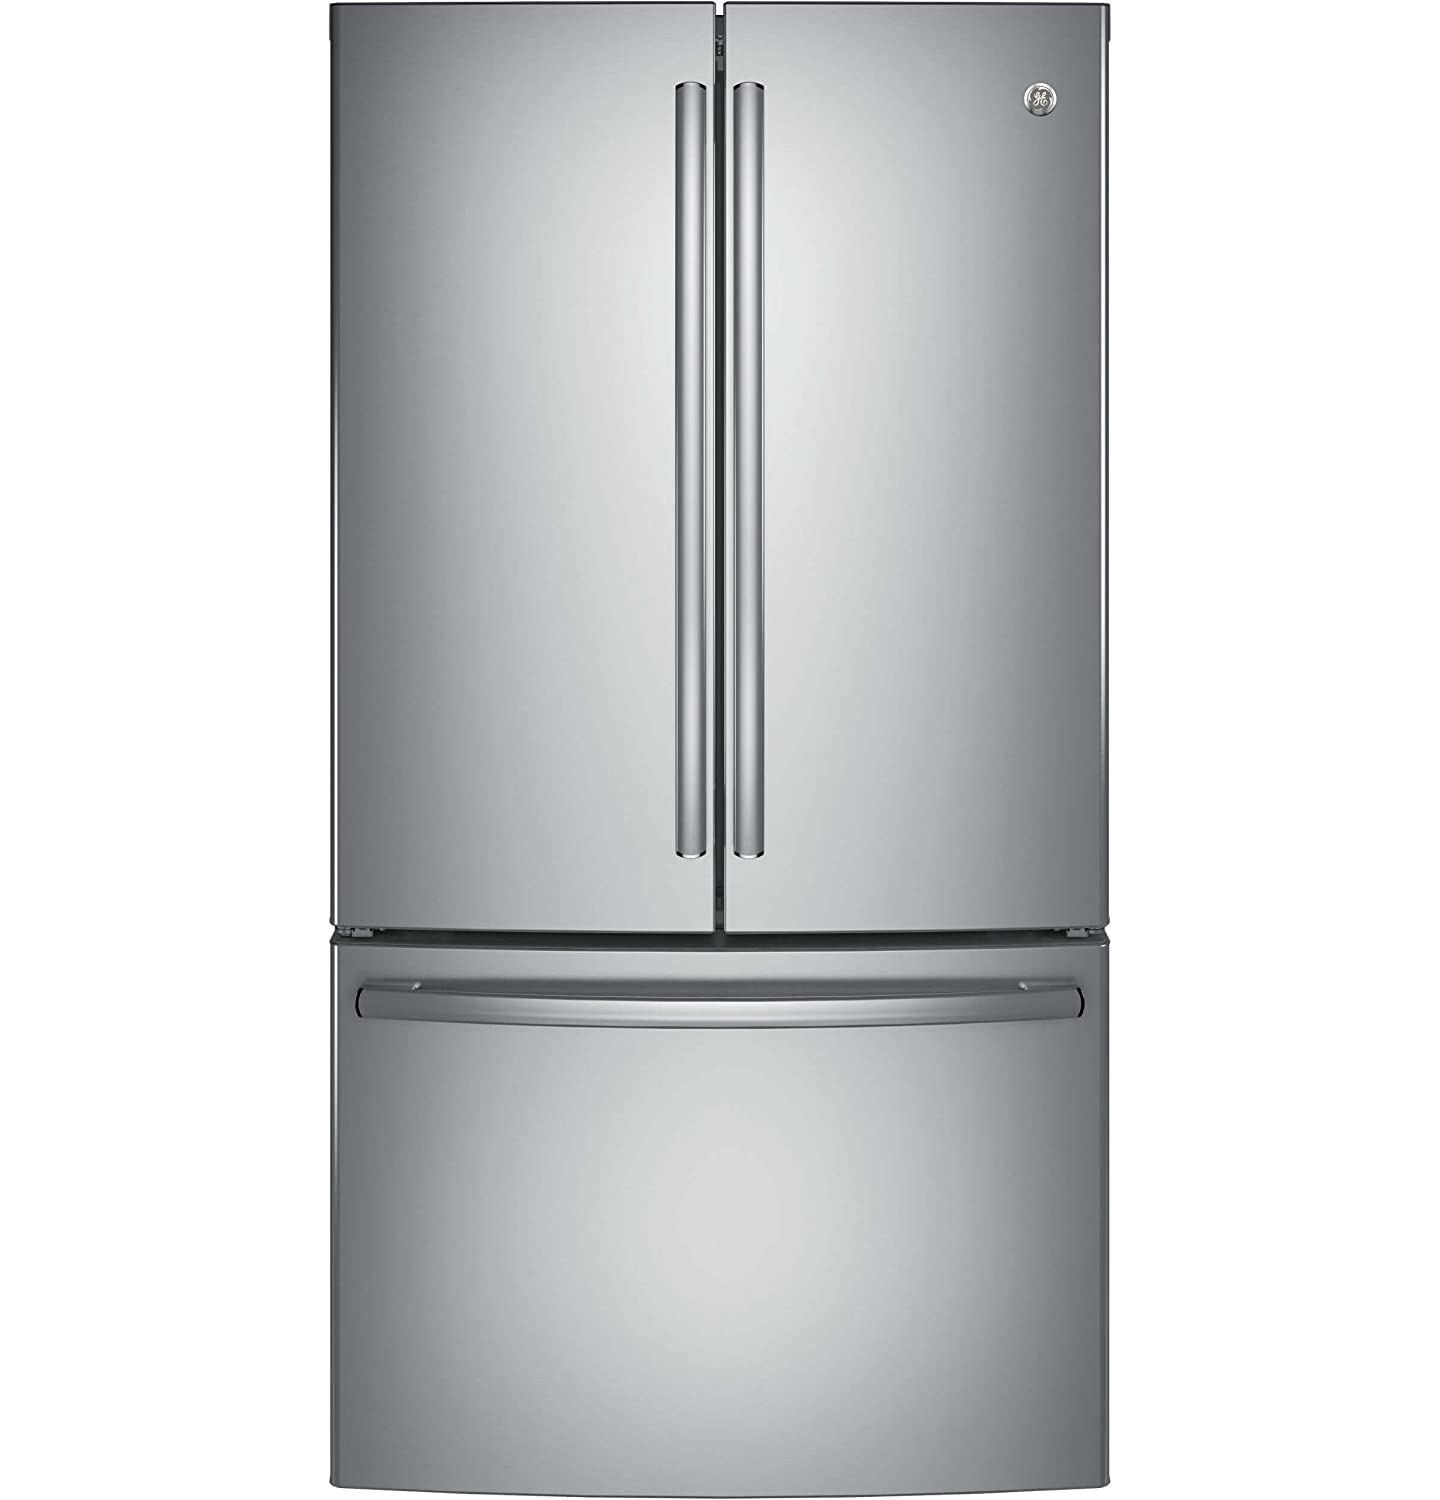 GE GNE29GSKSS 28.5 Cu. Ft. Stainless Steel French Door Refrigerator - Energy Star